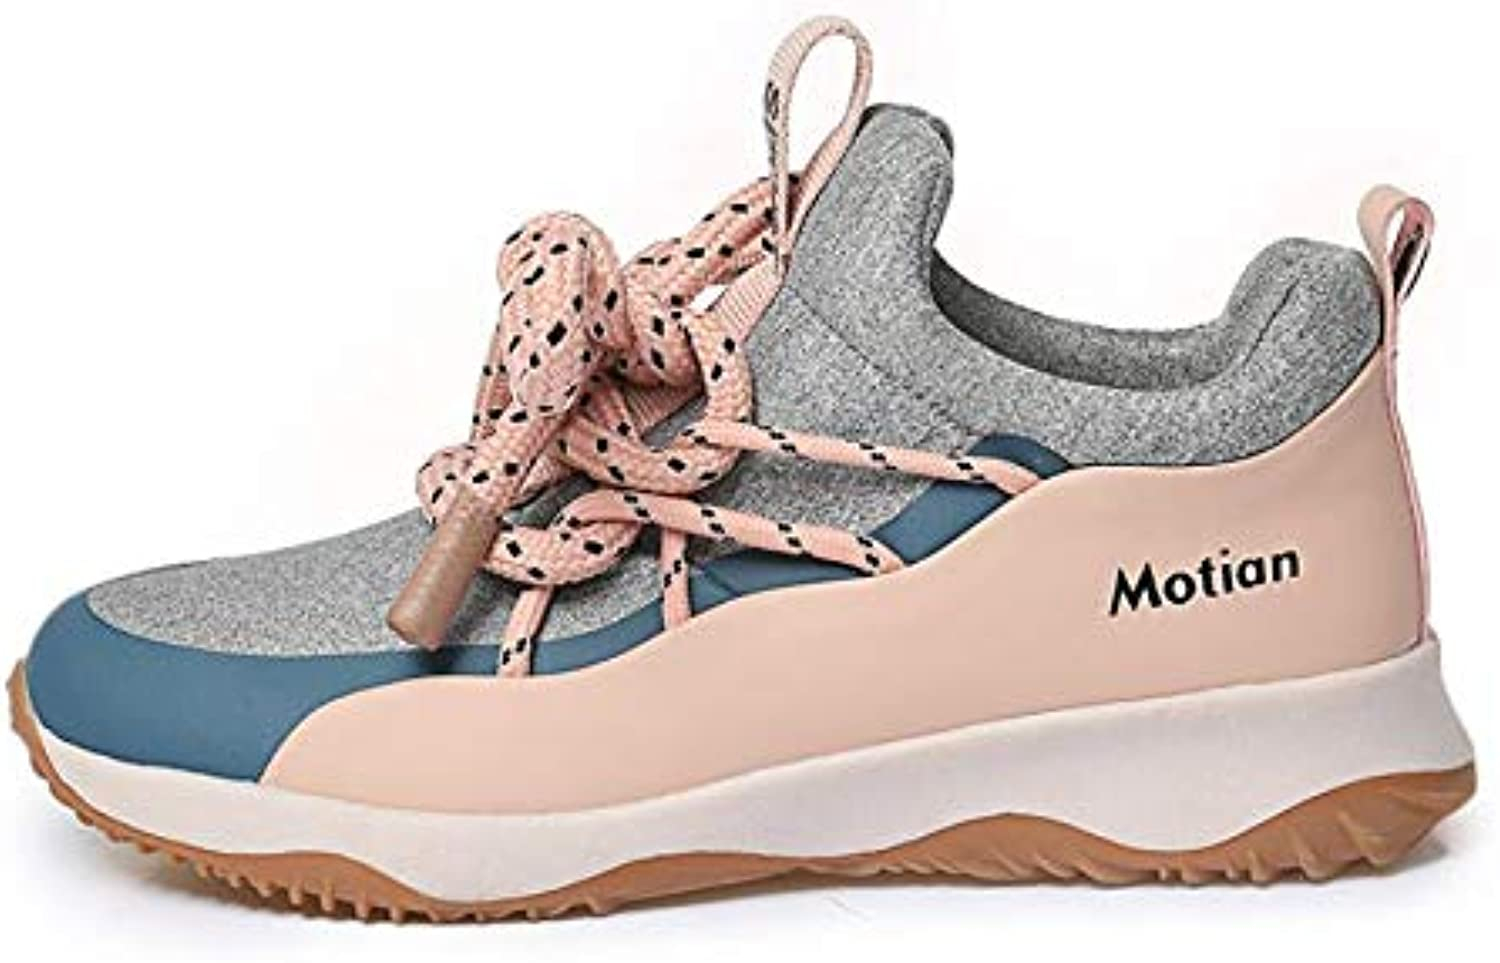 Women's shoes Non-Slip Lightweight Sneaker Fashion Comfort Mesh Sneakers Breathable Impact Resistant Trainers shoes Camping Gym Park (color   A, Size   39)